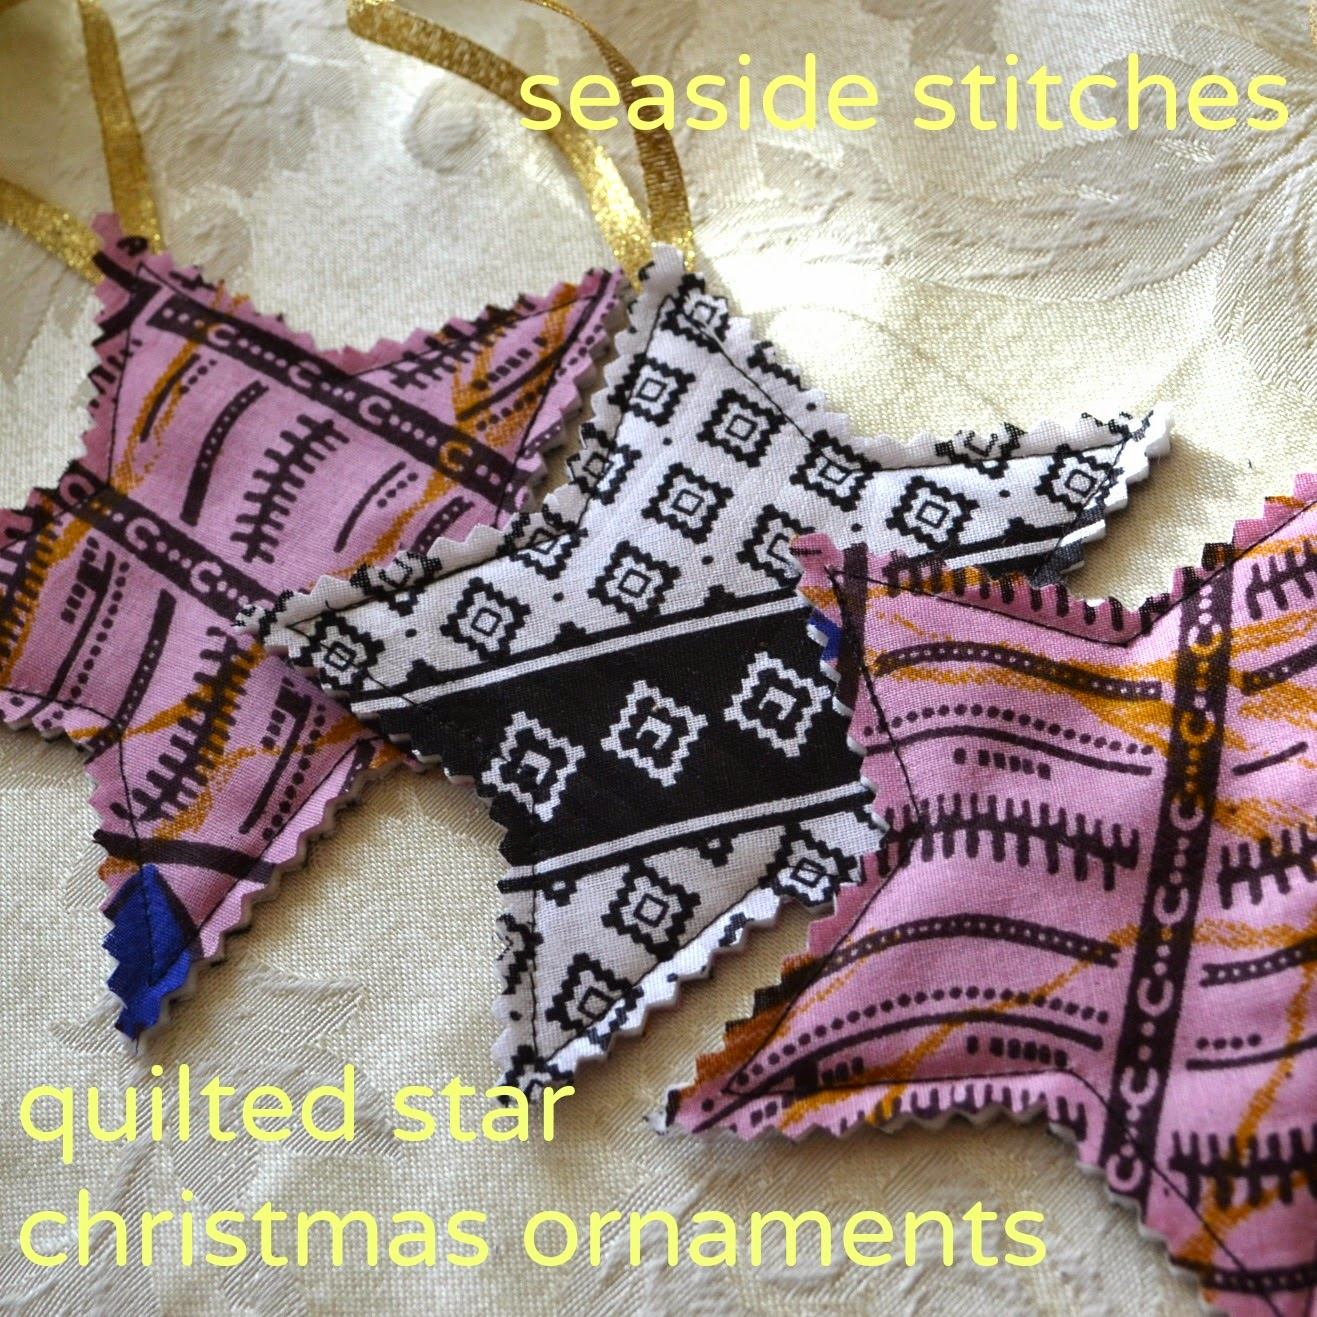 http://seaside-stitches.blogspot.com/2014/11/quilted-star-ornament-tutorial.html